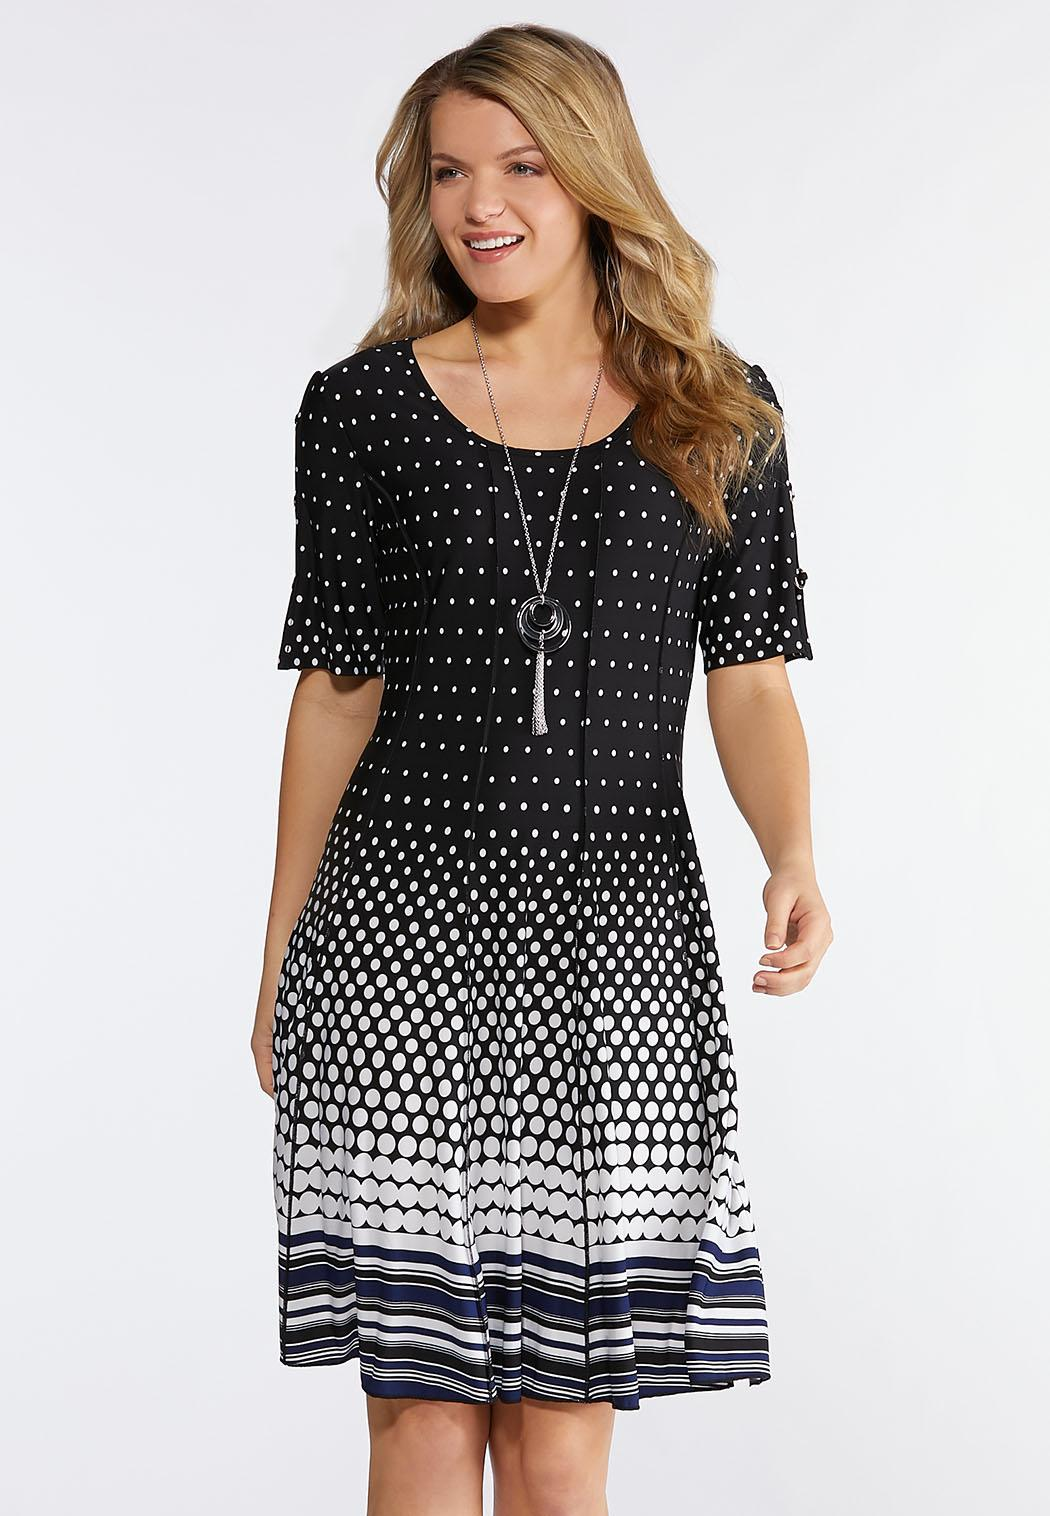 Plus Size Dotted Embellished Sleeve Dress A-line & Swing Cato Fashions